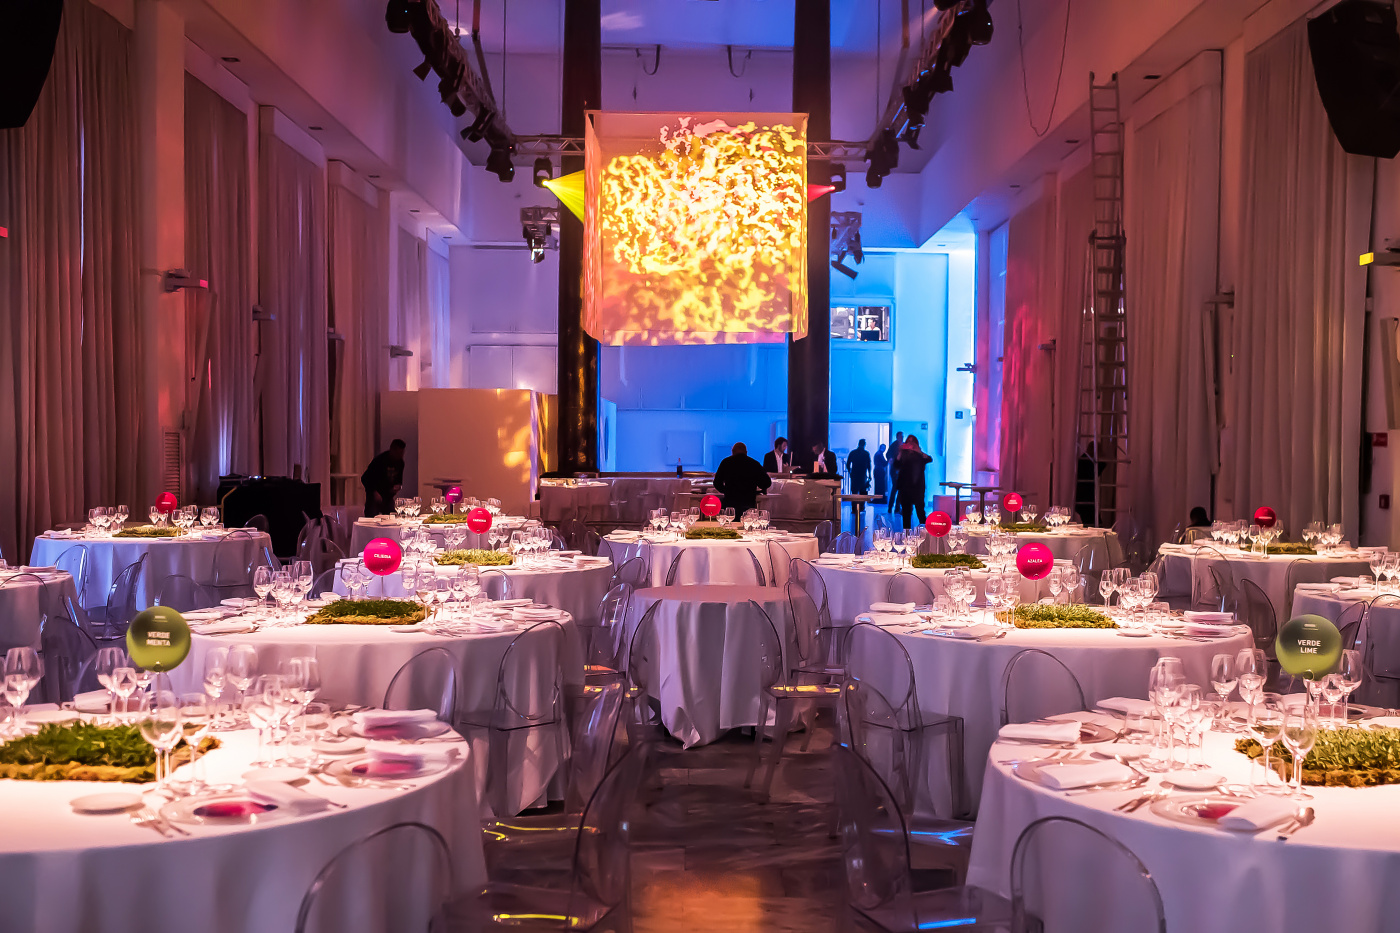 Event for a company in Italy with round tables